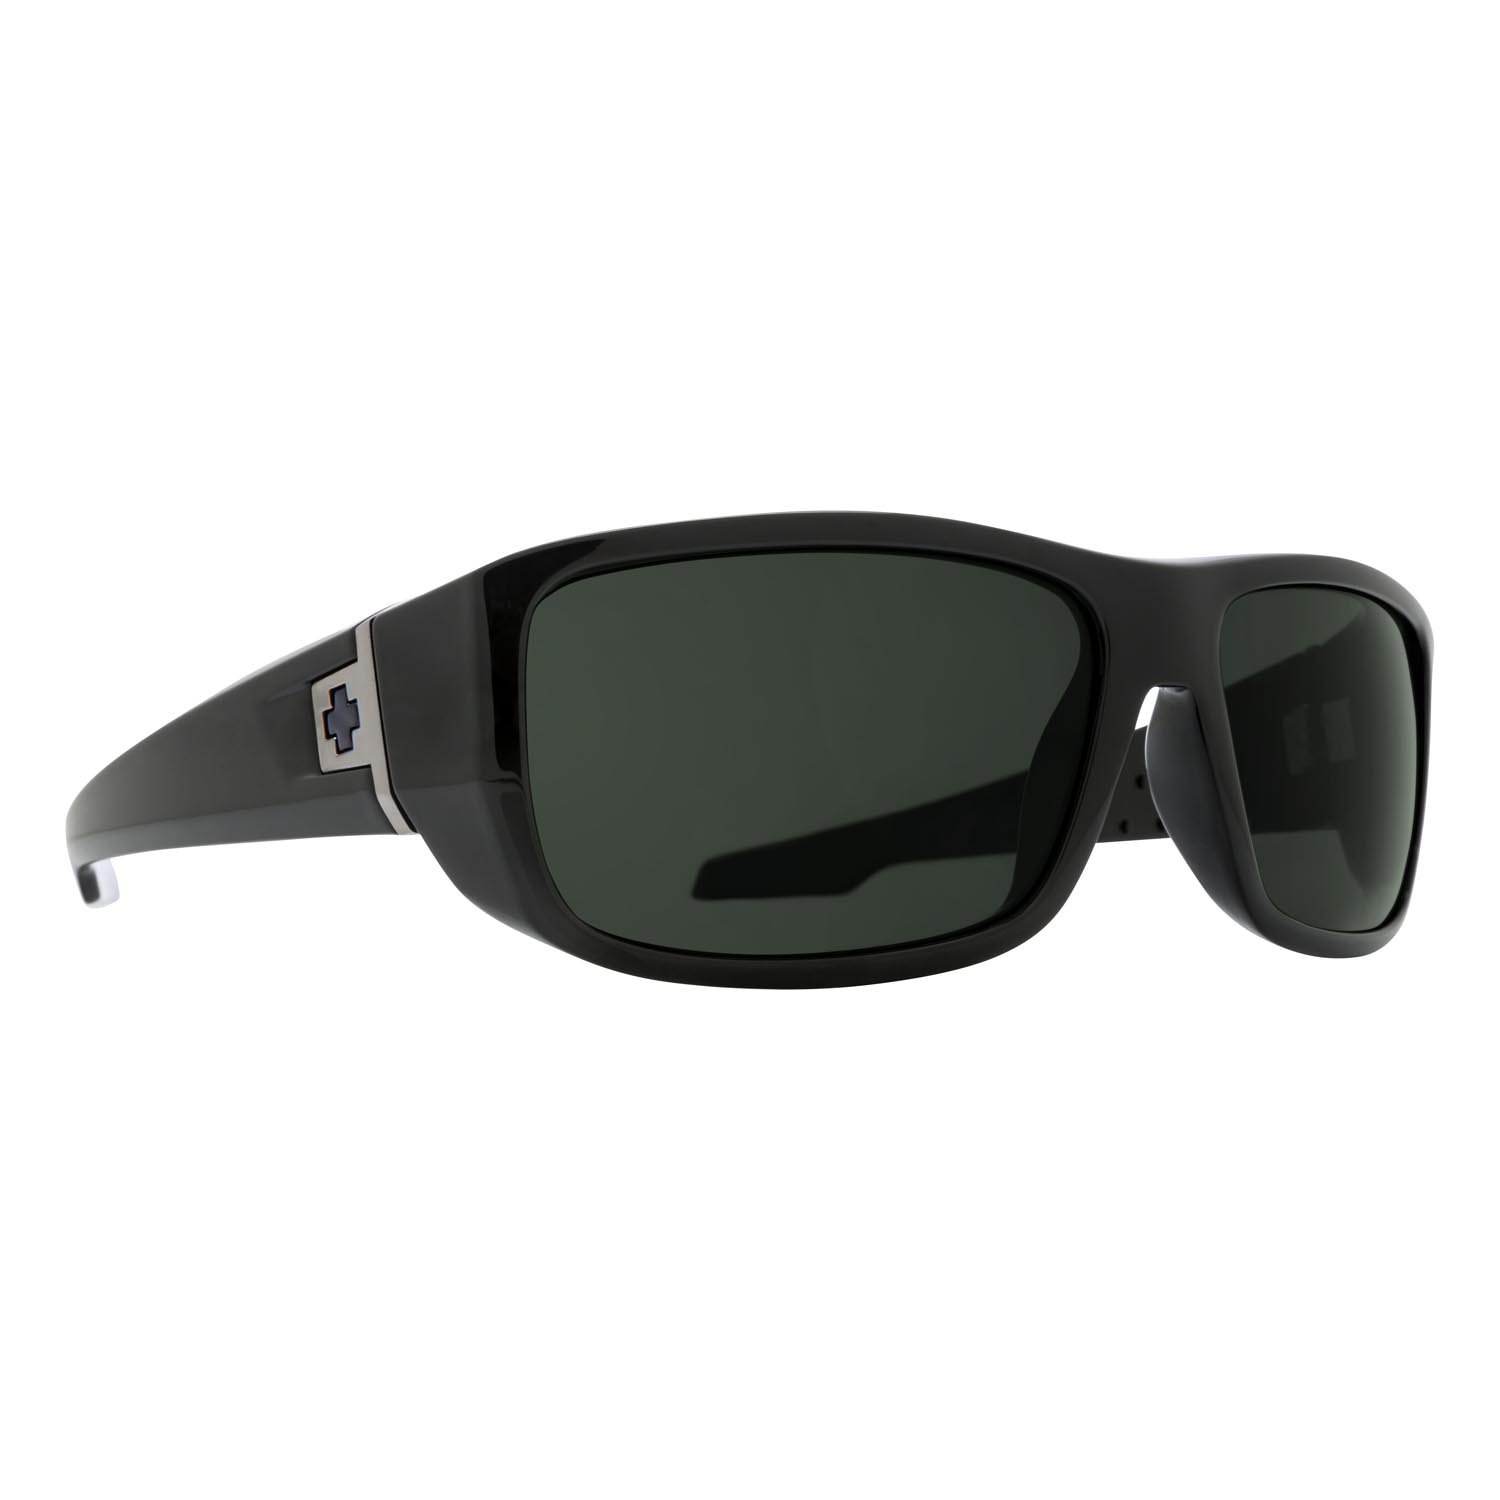 Spy Sunglasses mc3 in Shiny black with gray lenses